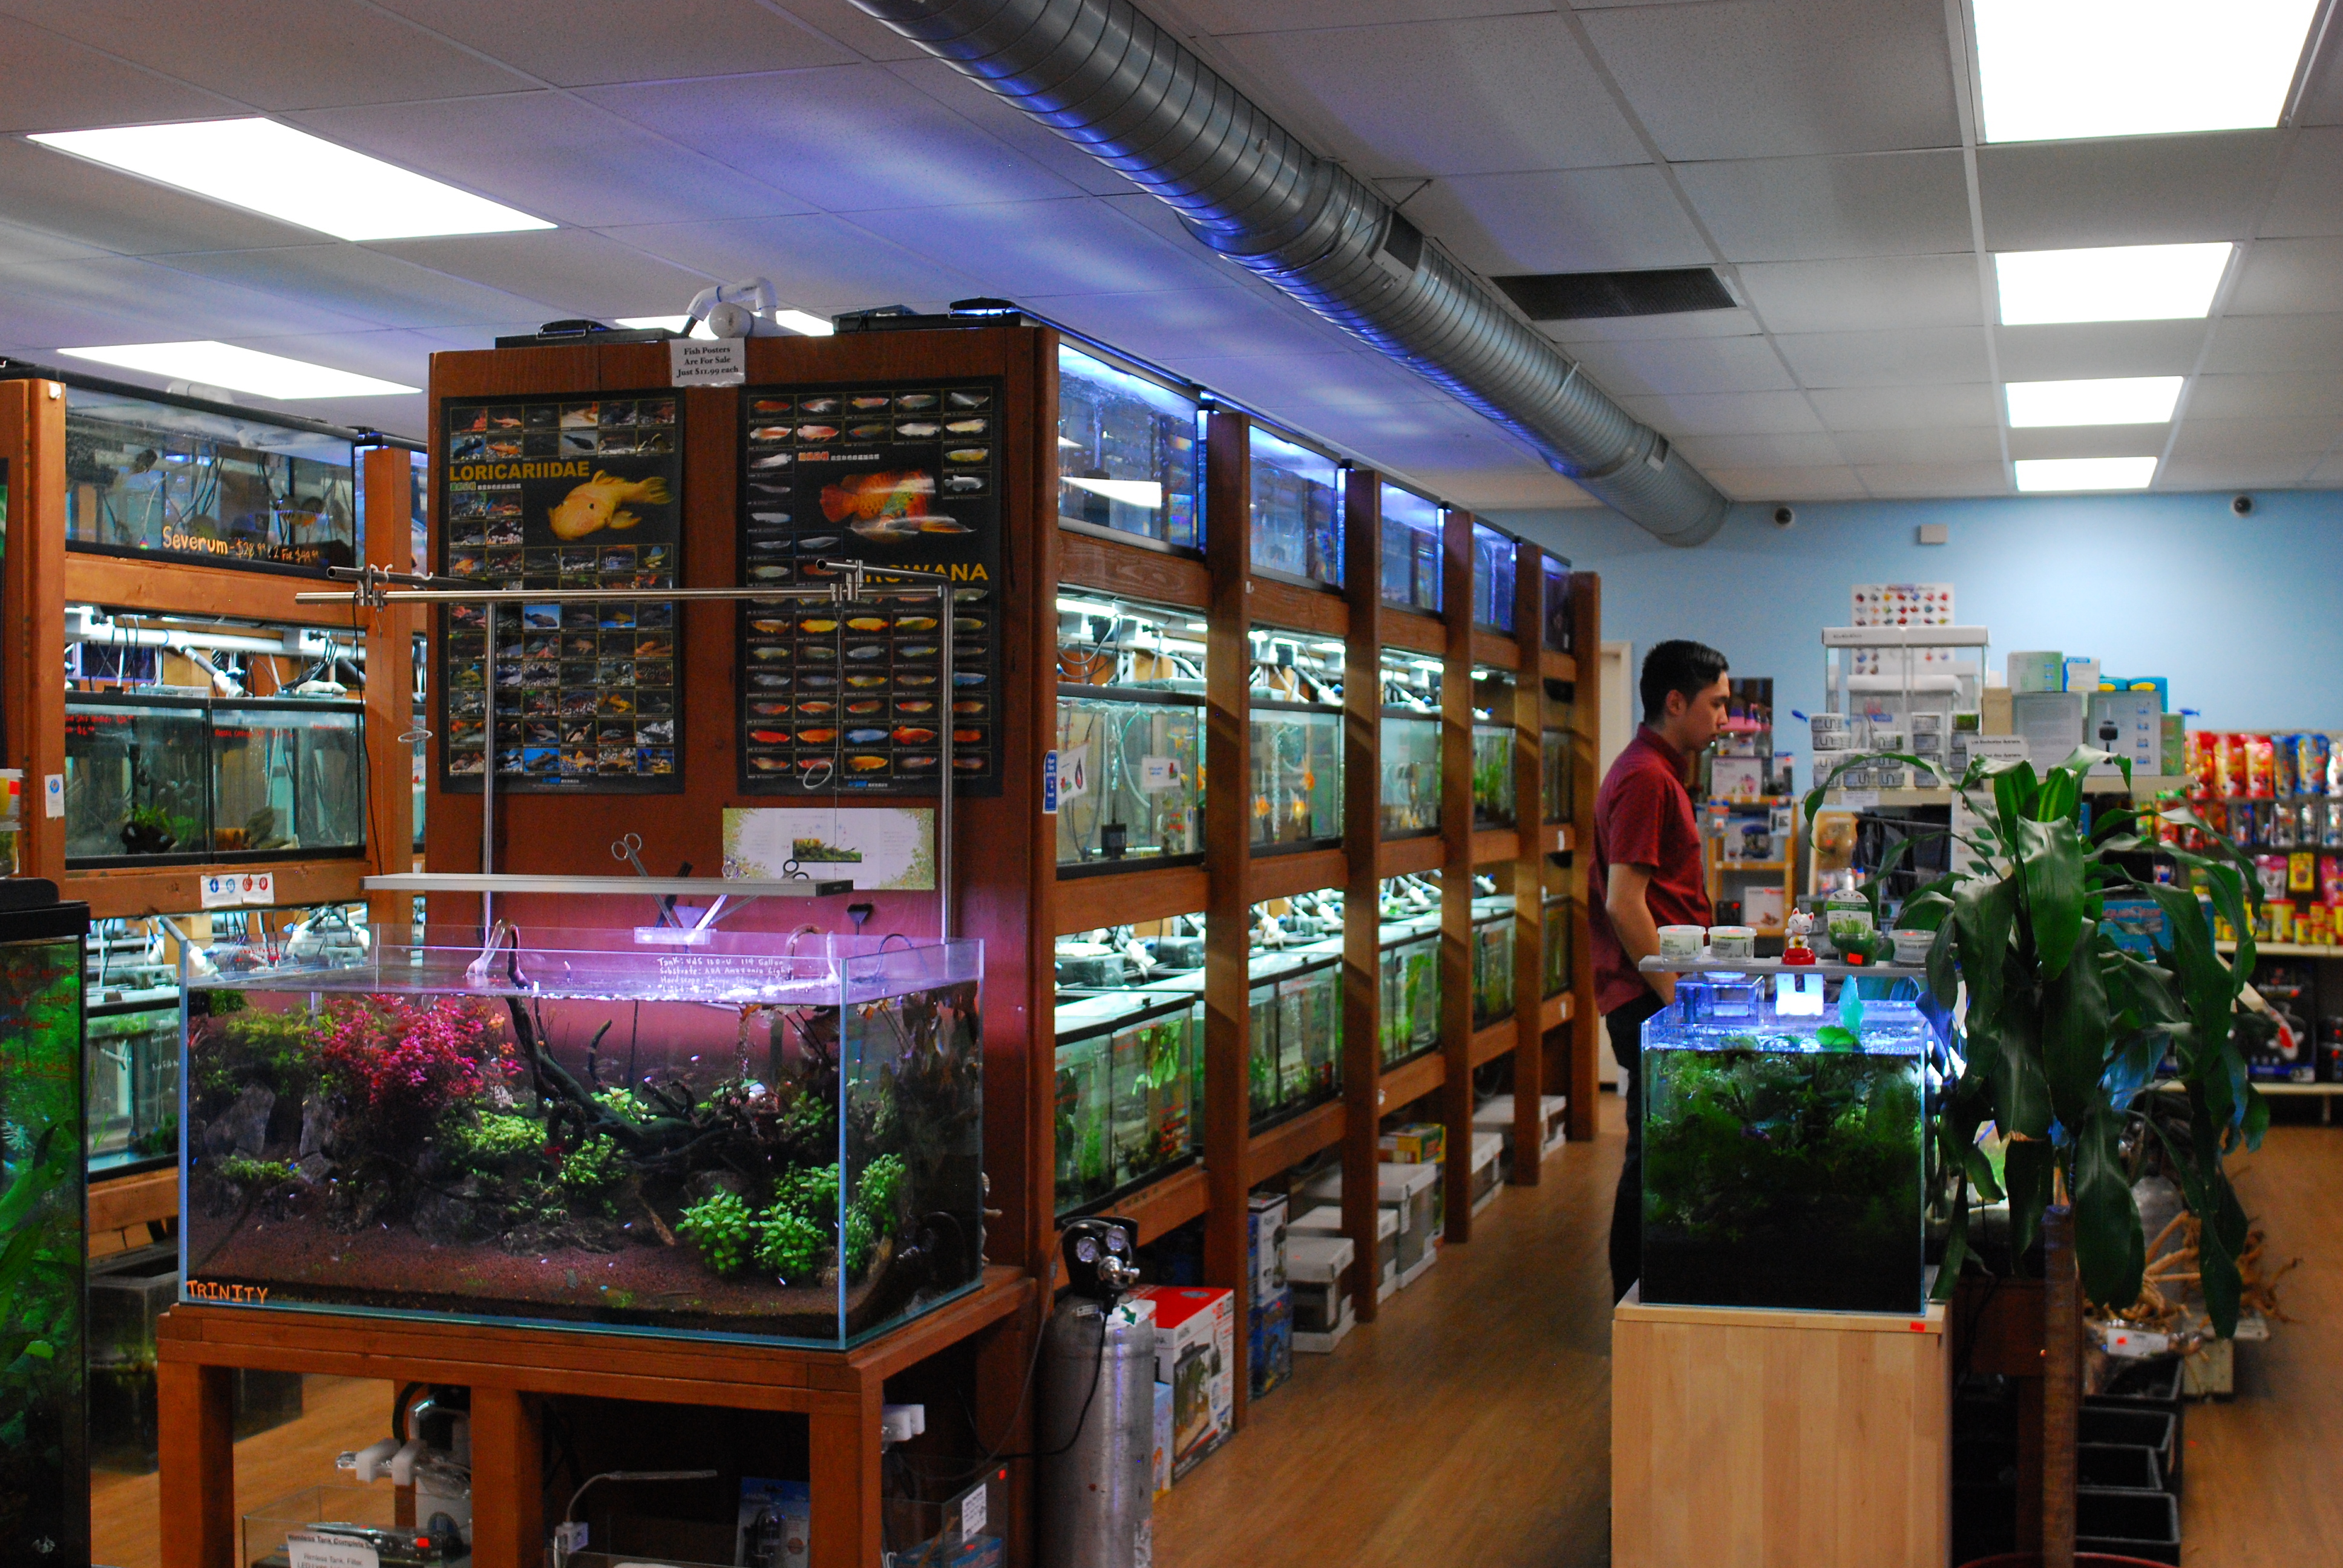 Pet Zone Convoy/Kearny Mesa is the go-to LFS for aquatic plants and freshwater tropical fish!